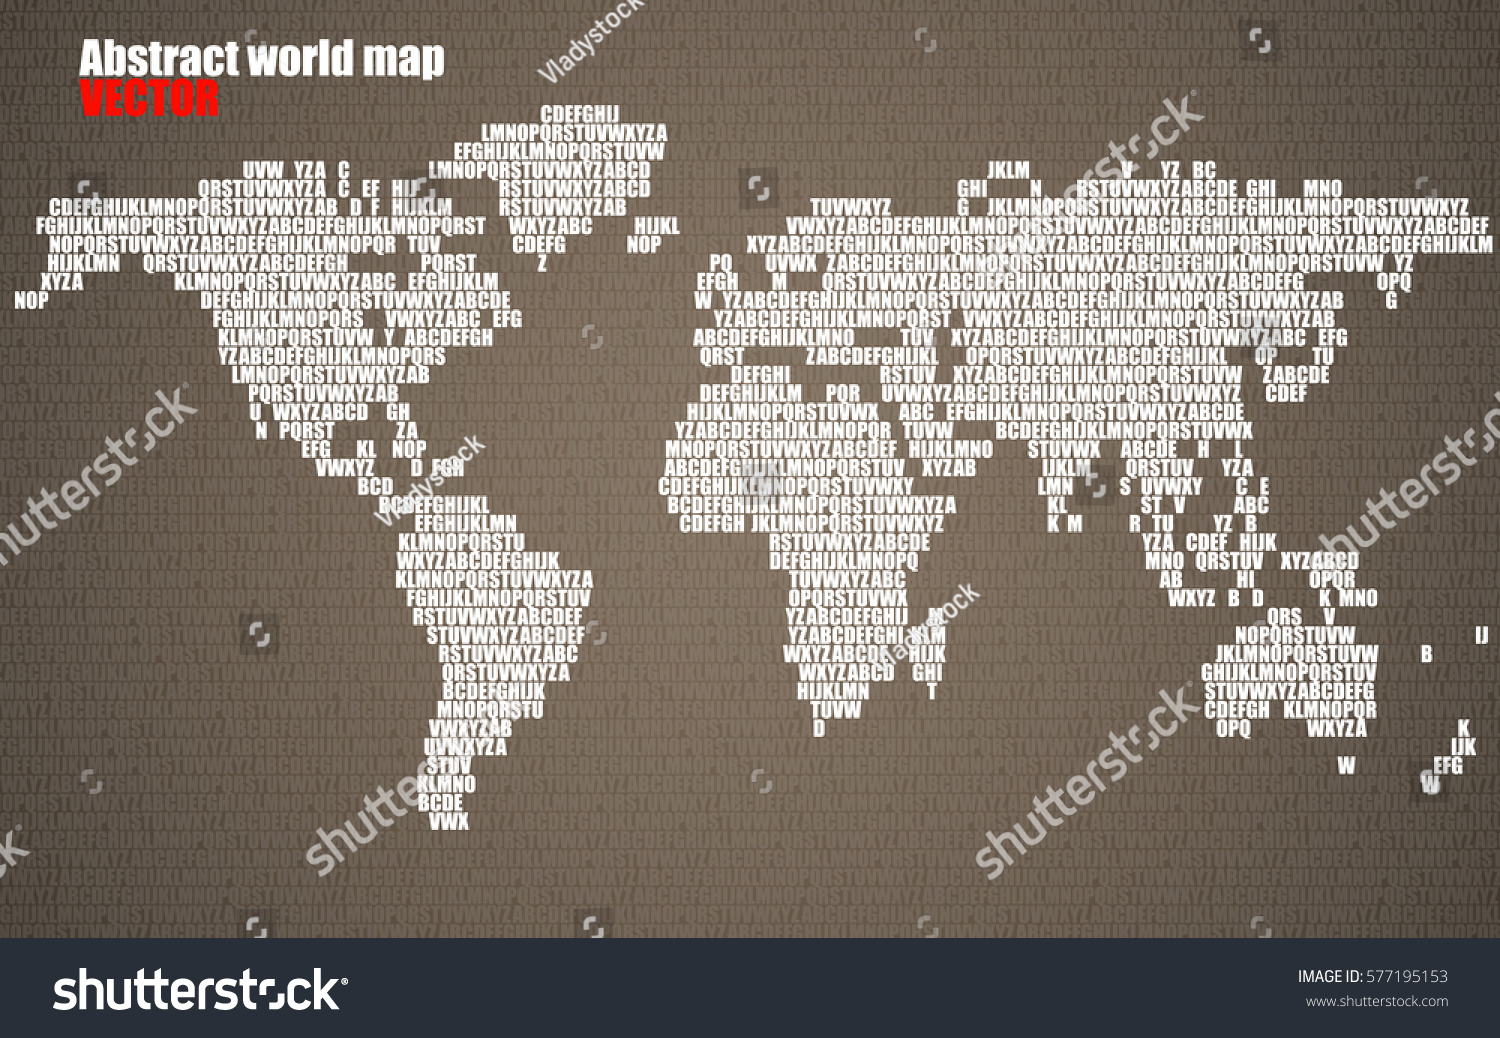 Abstract world map letters english alphabet stock vector 577195153 abstract world map with letters of english alphabet vector background gumiabroncs Images